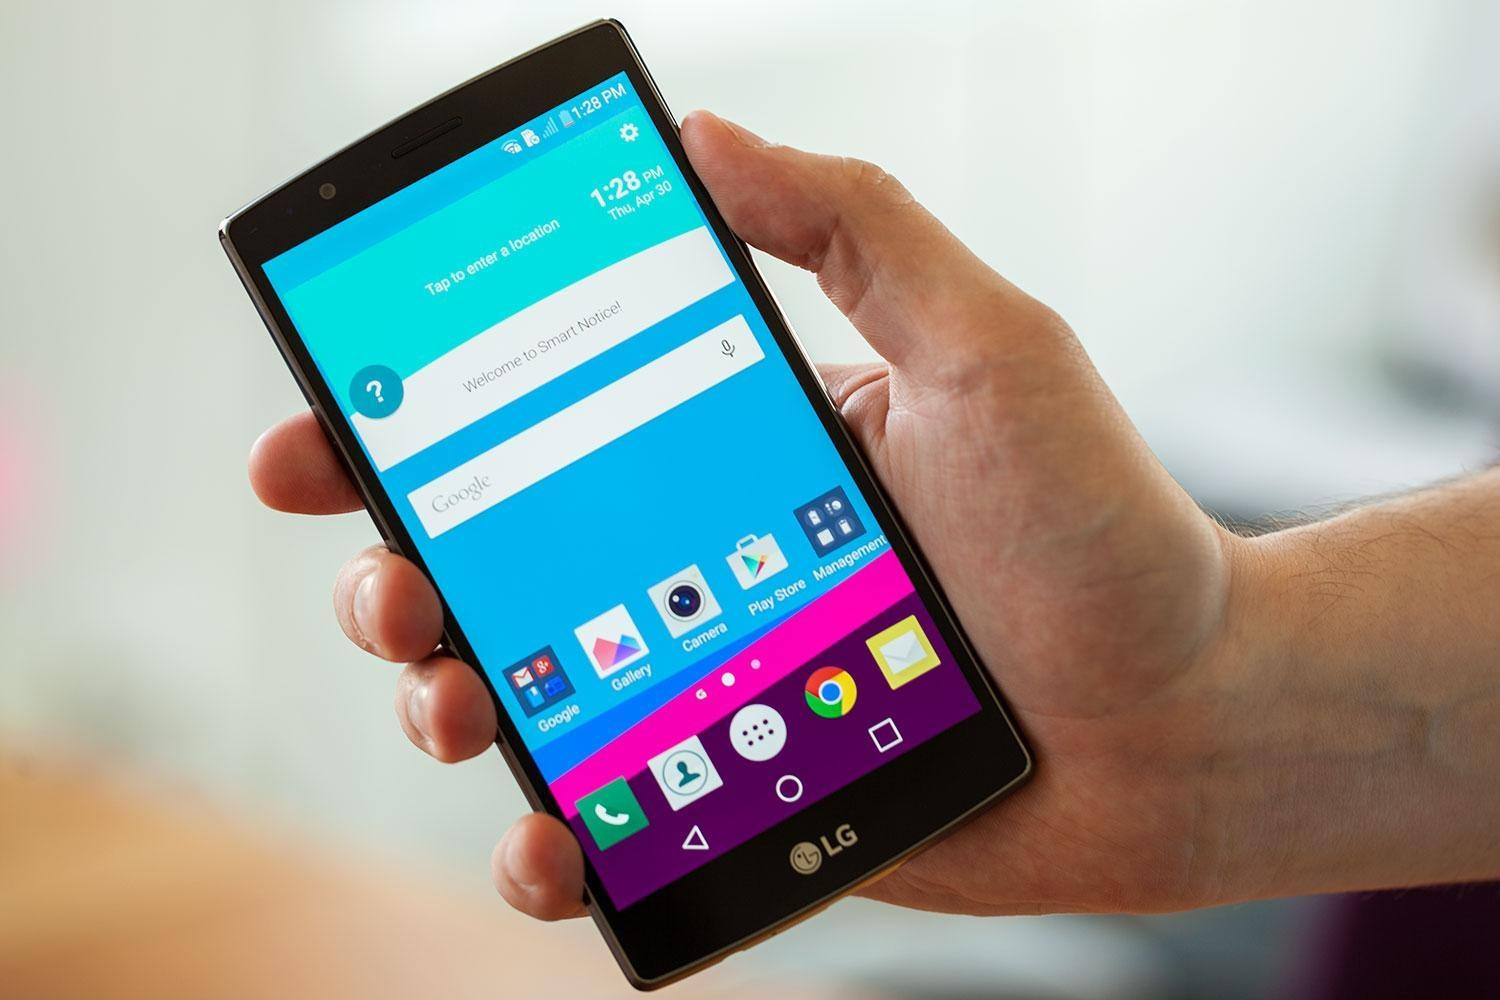 #3 in Our Best LG Phones Models List - LG G4